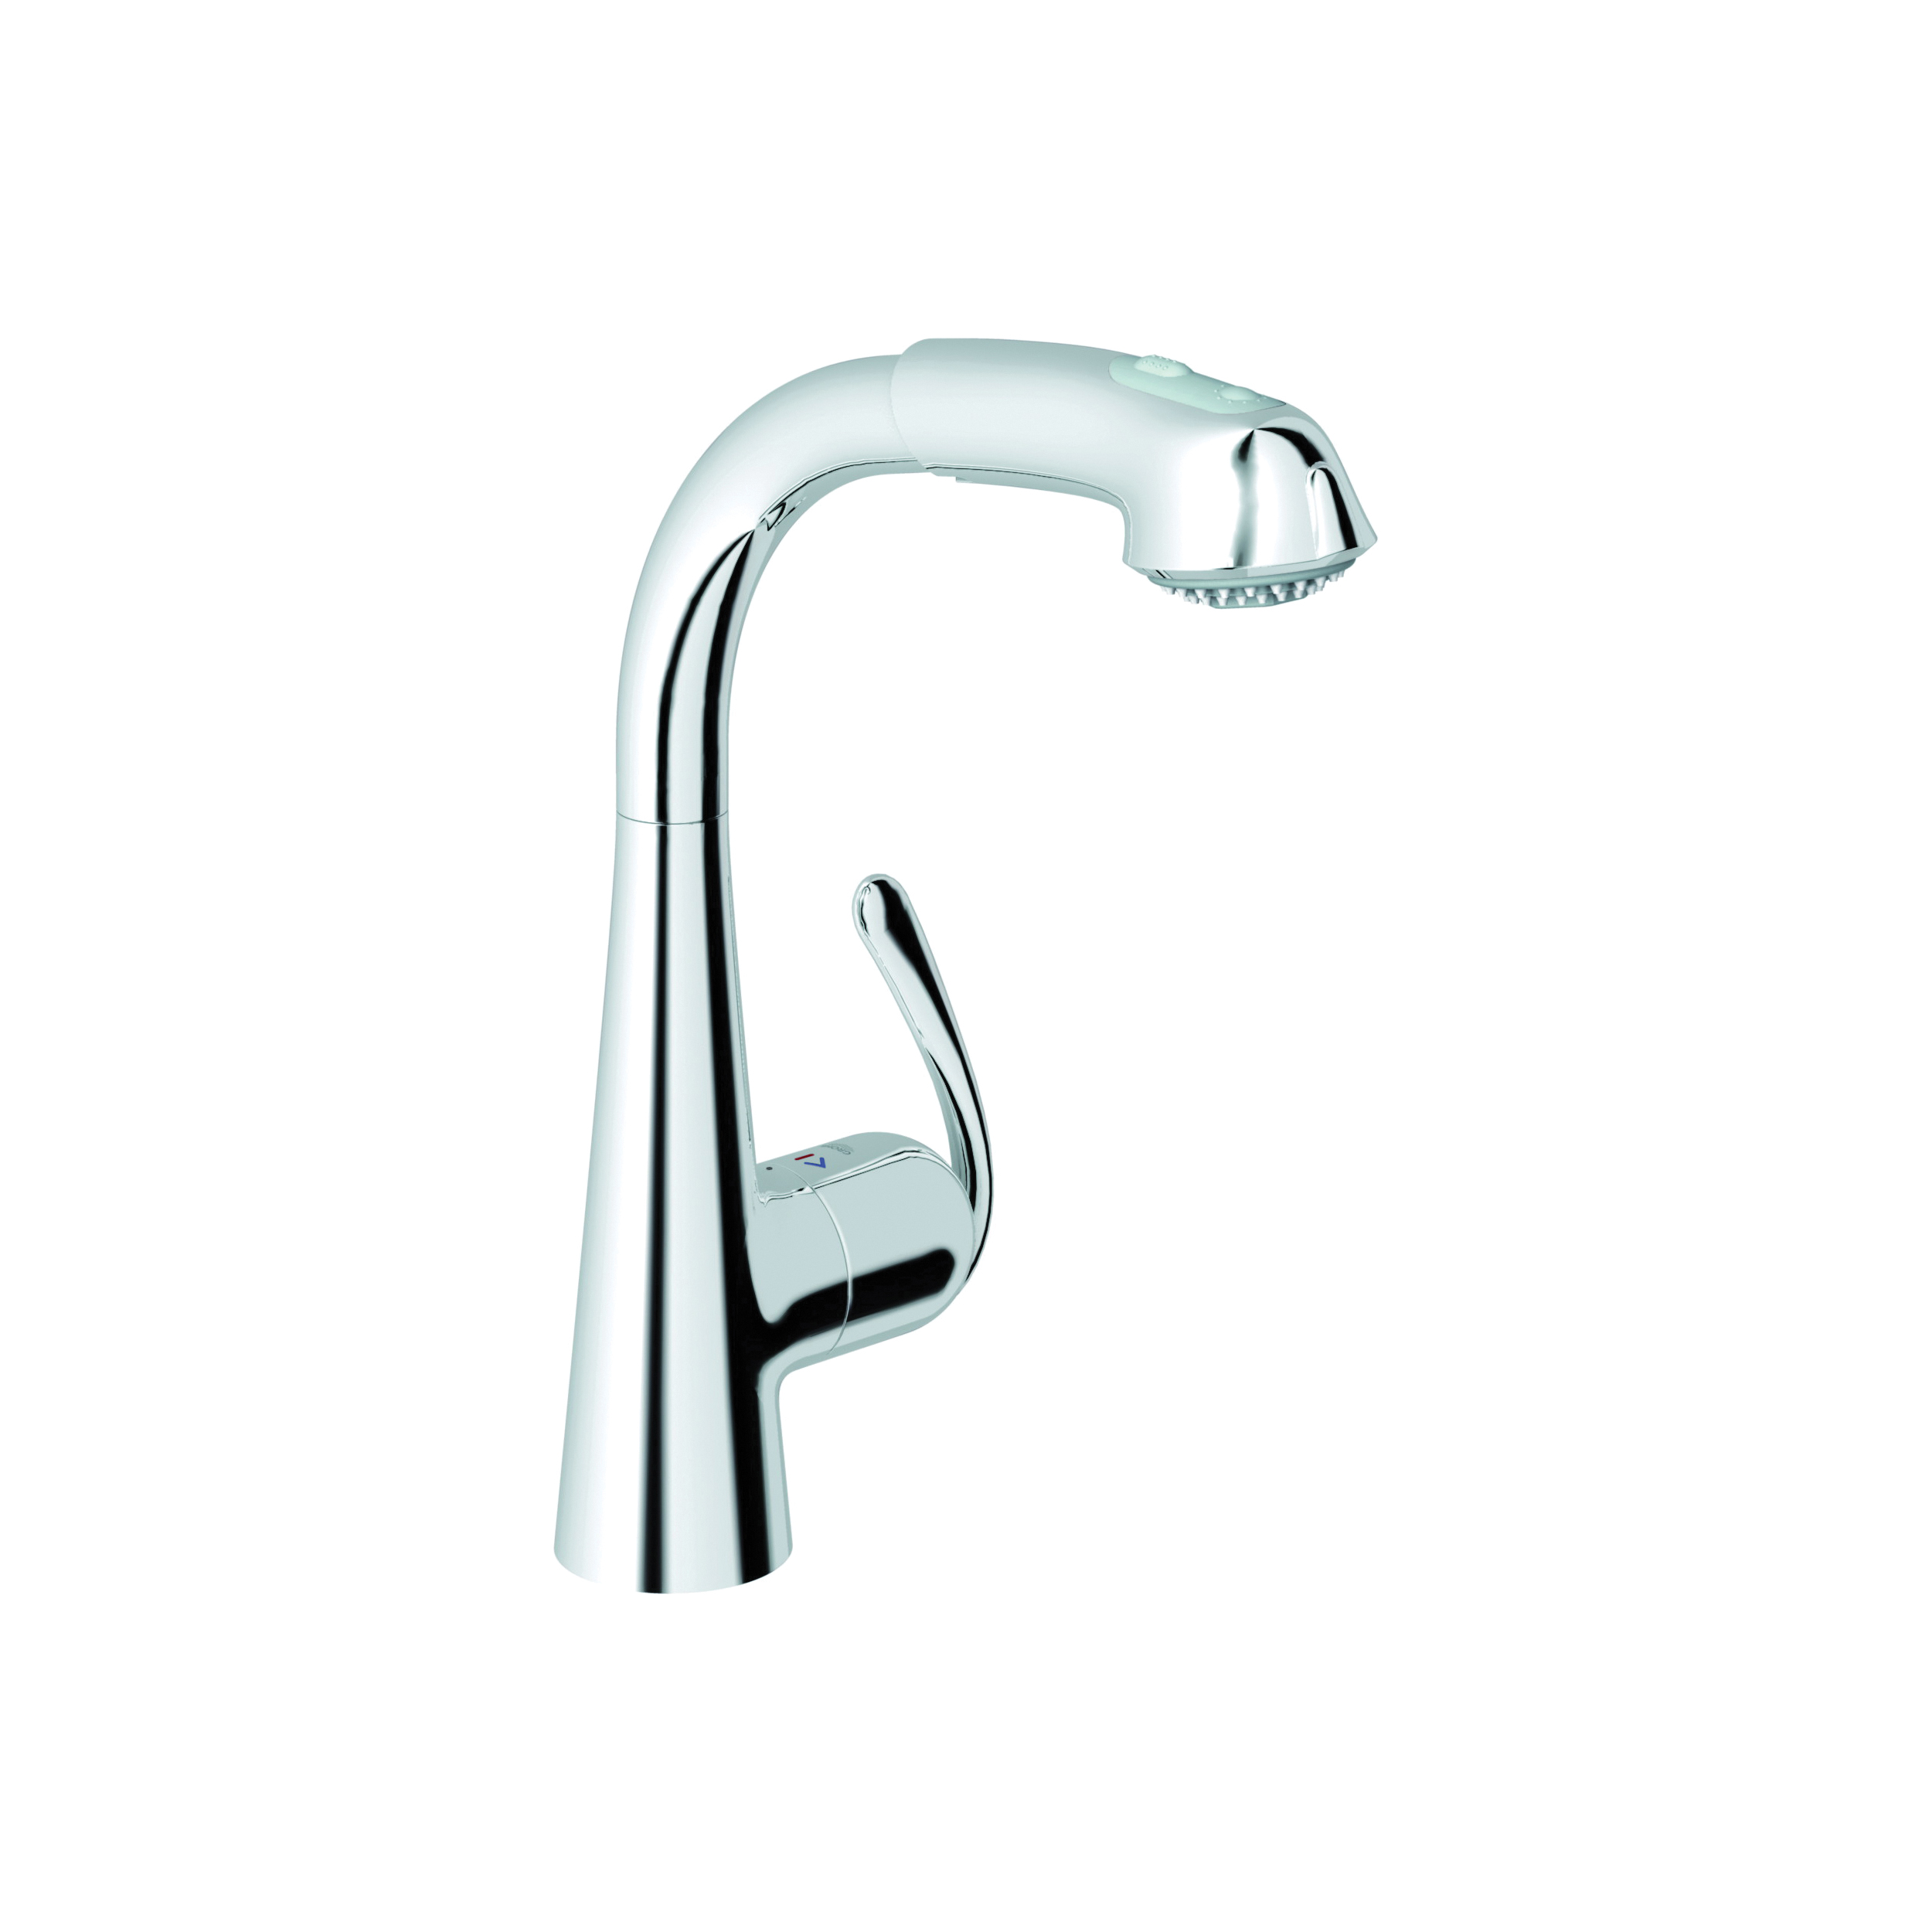 GROHE 33893000 Ladylux3 Plus Sink Mixer, 1.75 gpm, 1 Handle, Chrome Plated, Import